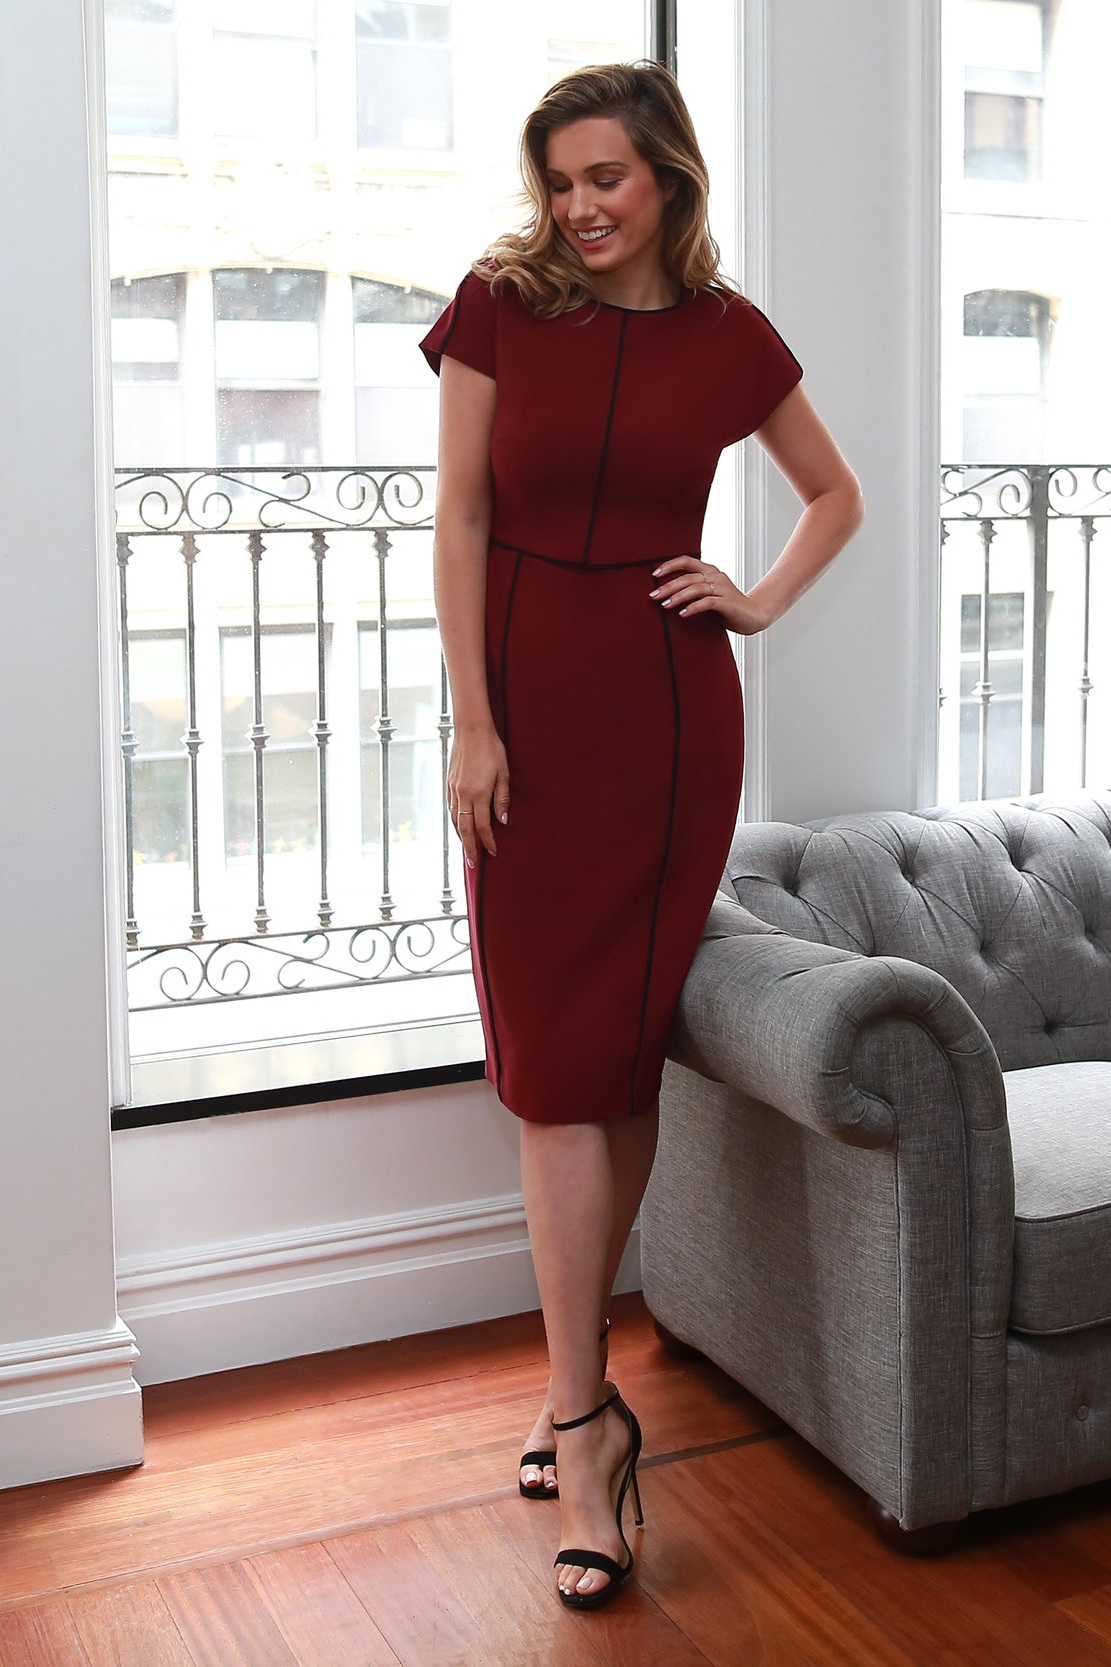 The Meryl Dress in Beet - Ultra chic with strong lines and a sophisticated silhouette, this dress was made for your most important meetings.